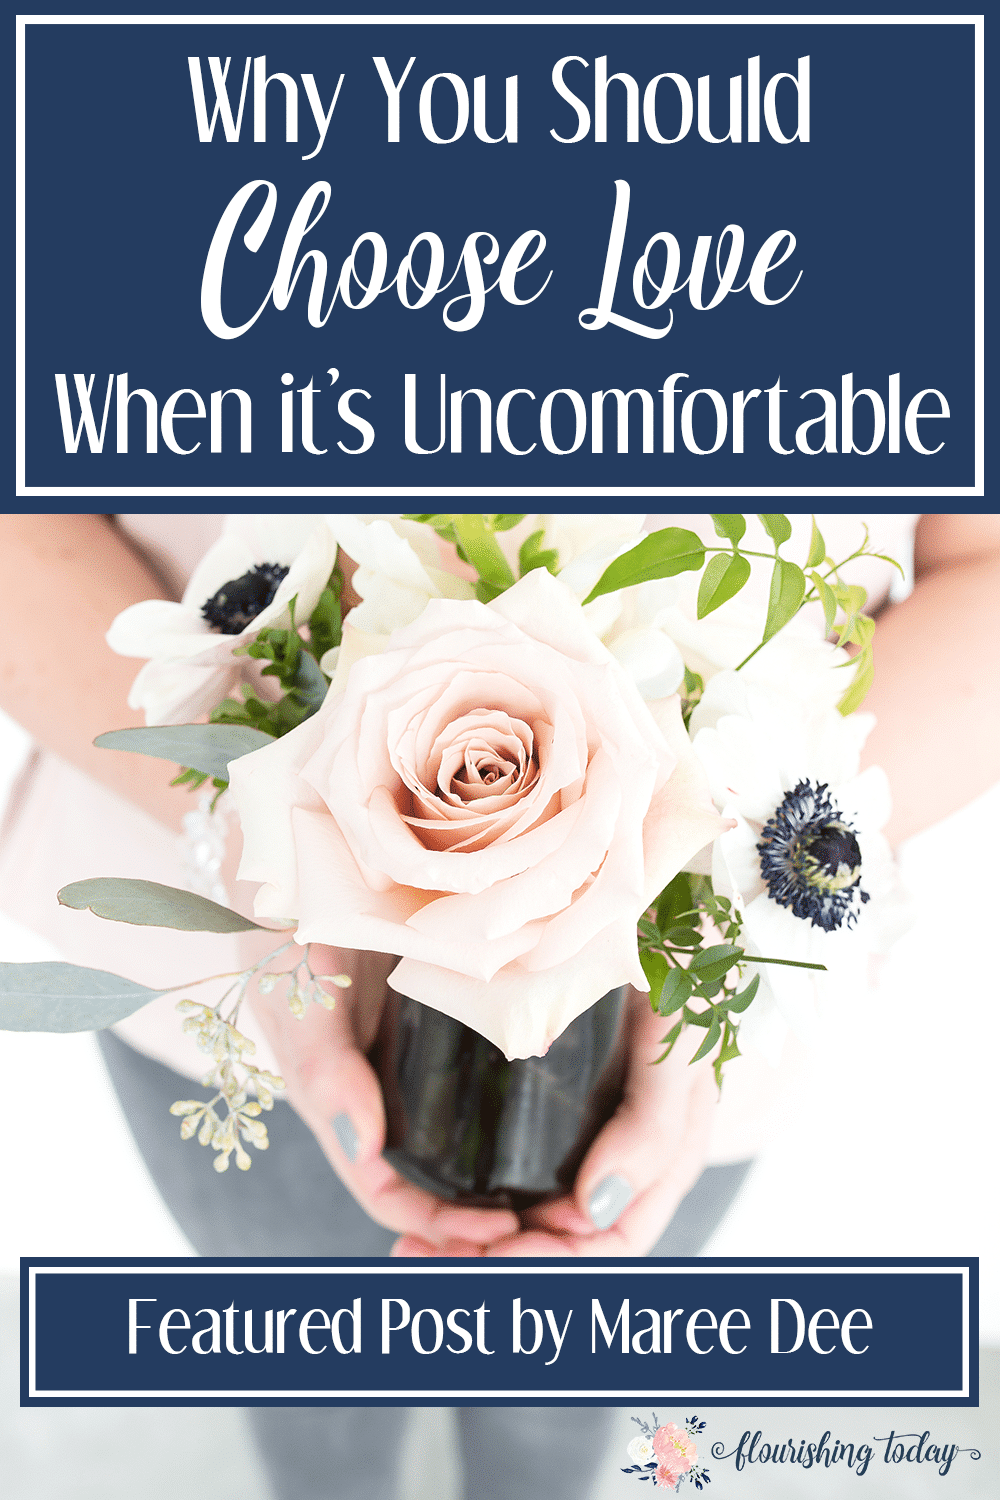 Do you find it hard to love others when its uncomfortable? Love is not just an emotion, but a choice. We can choose love despite our feelings and here's how